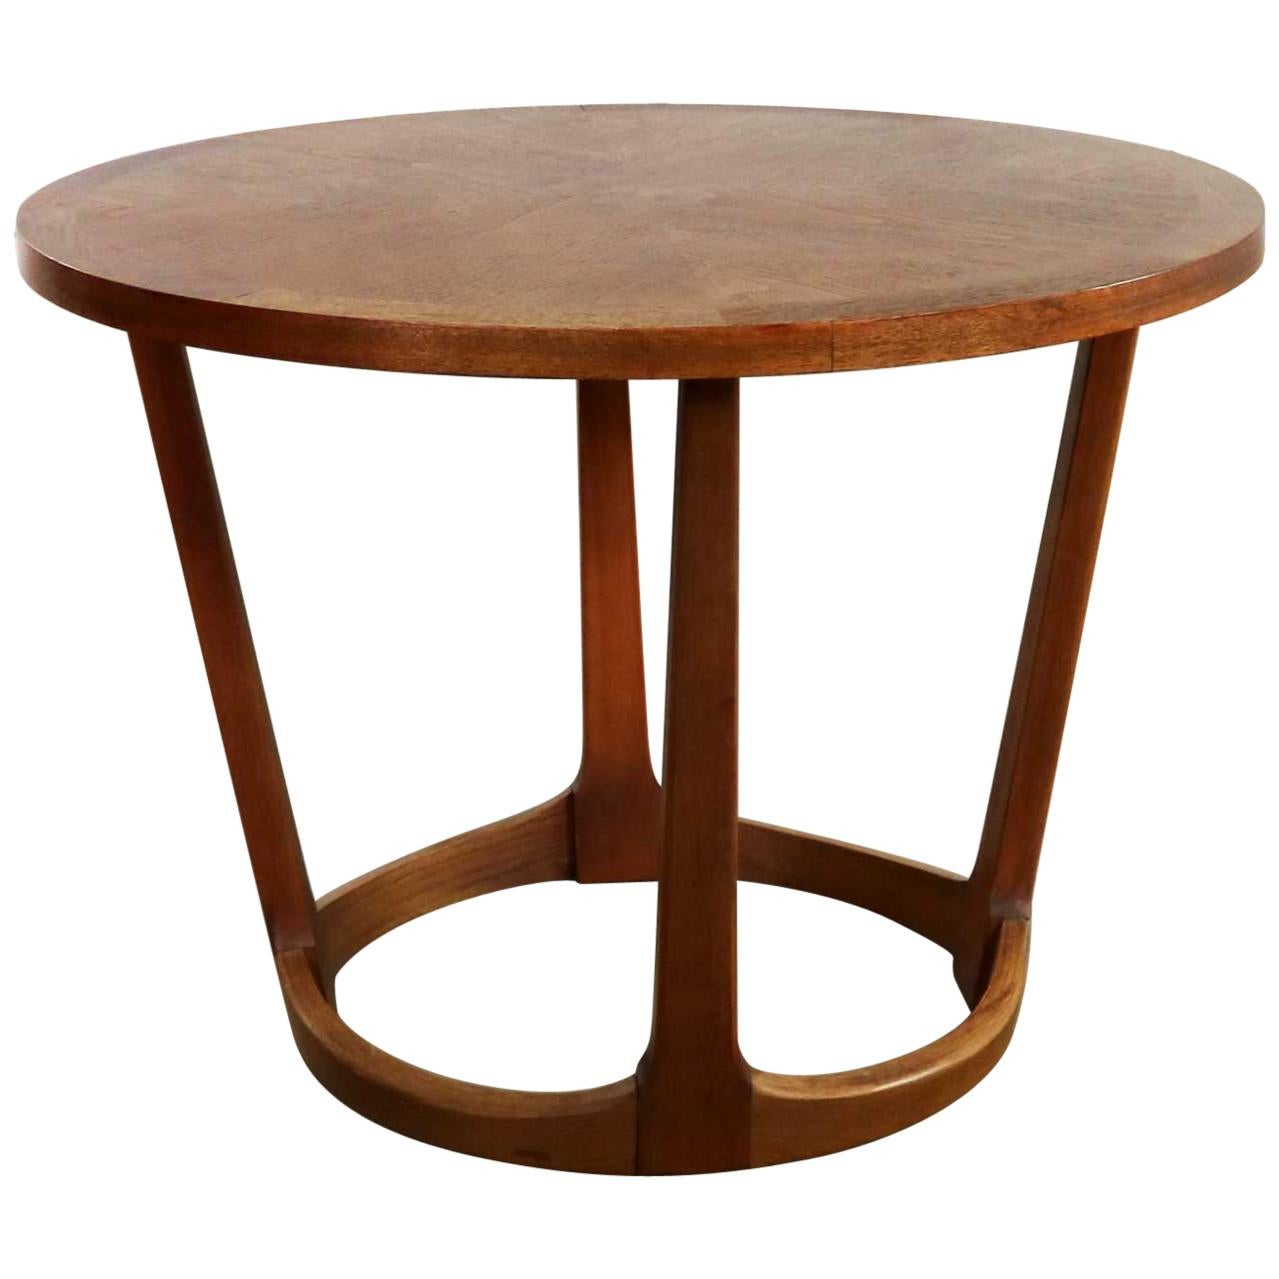 Mid Century Modern Lane Round Drum End Table 997 22 From The Rhythm  Collection